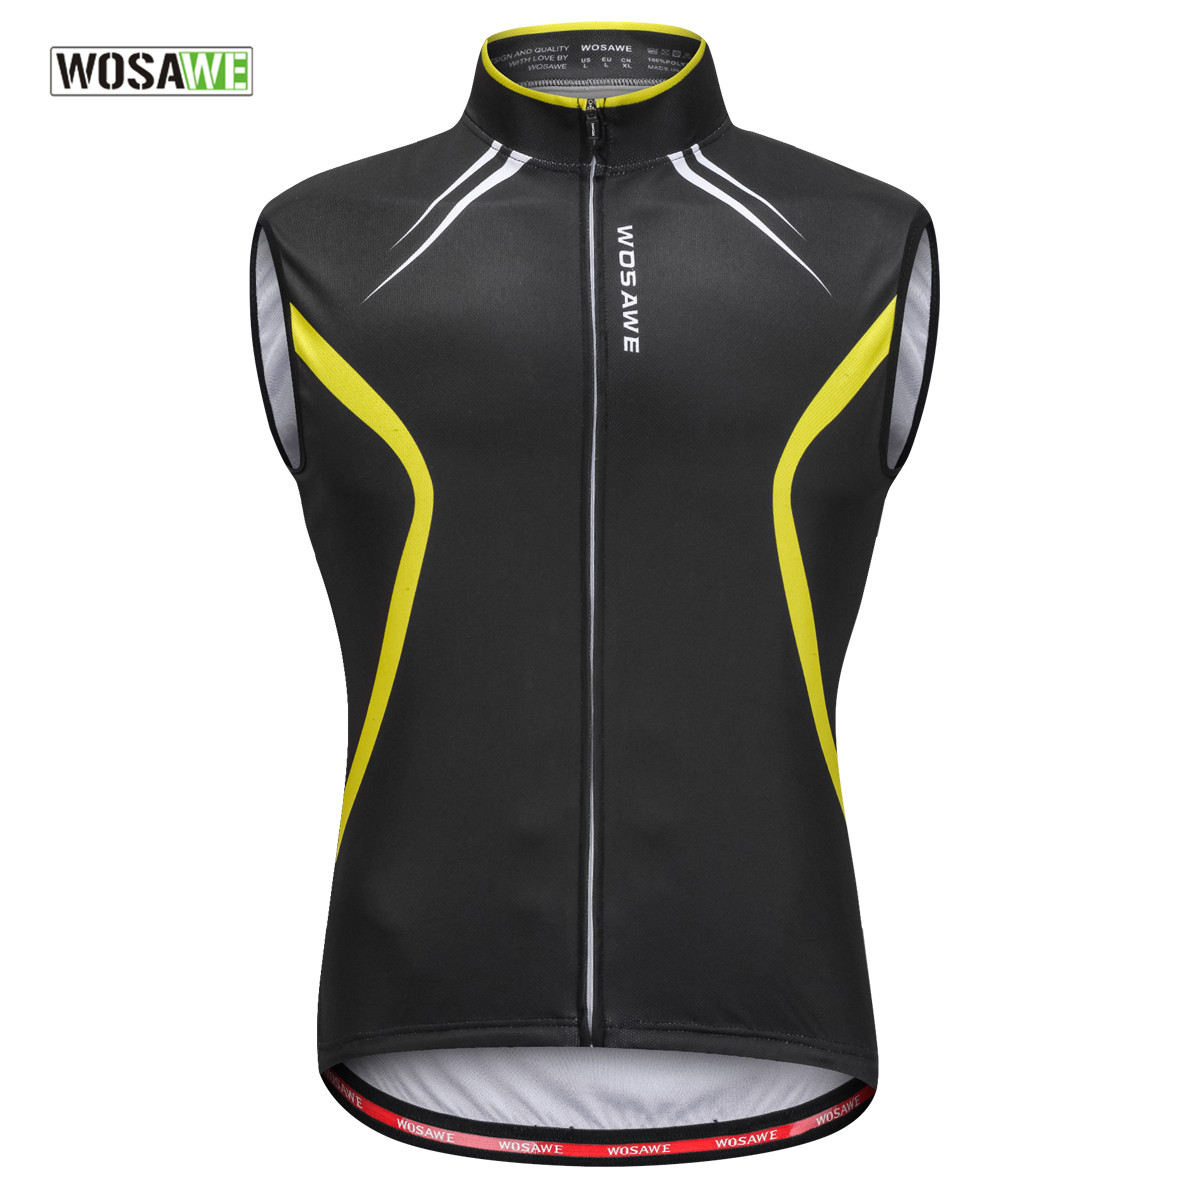 WOSAWE Cycling Vest Men Summer MTB Road Bike Bicycle Shirt Quick Dry Gilet Jerseys Sleeveless Tops Ciclismo Cycle Clothing